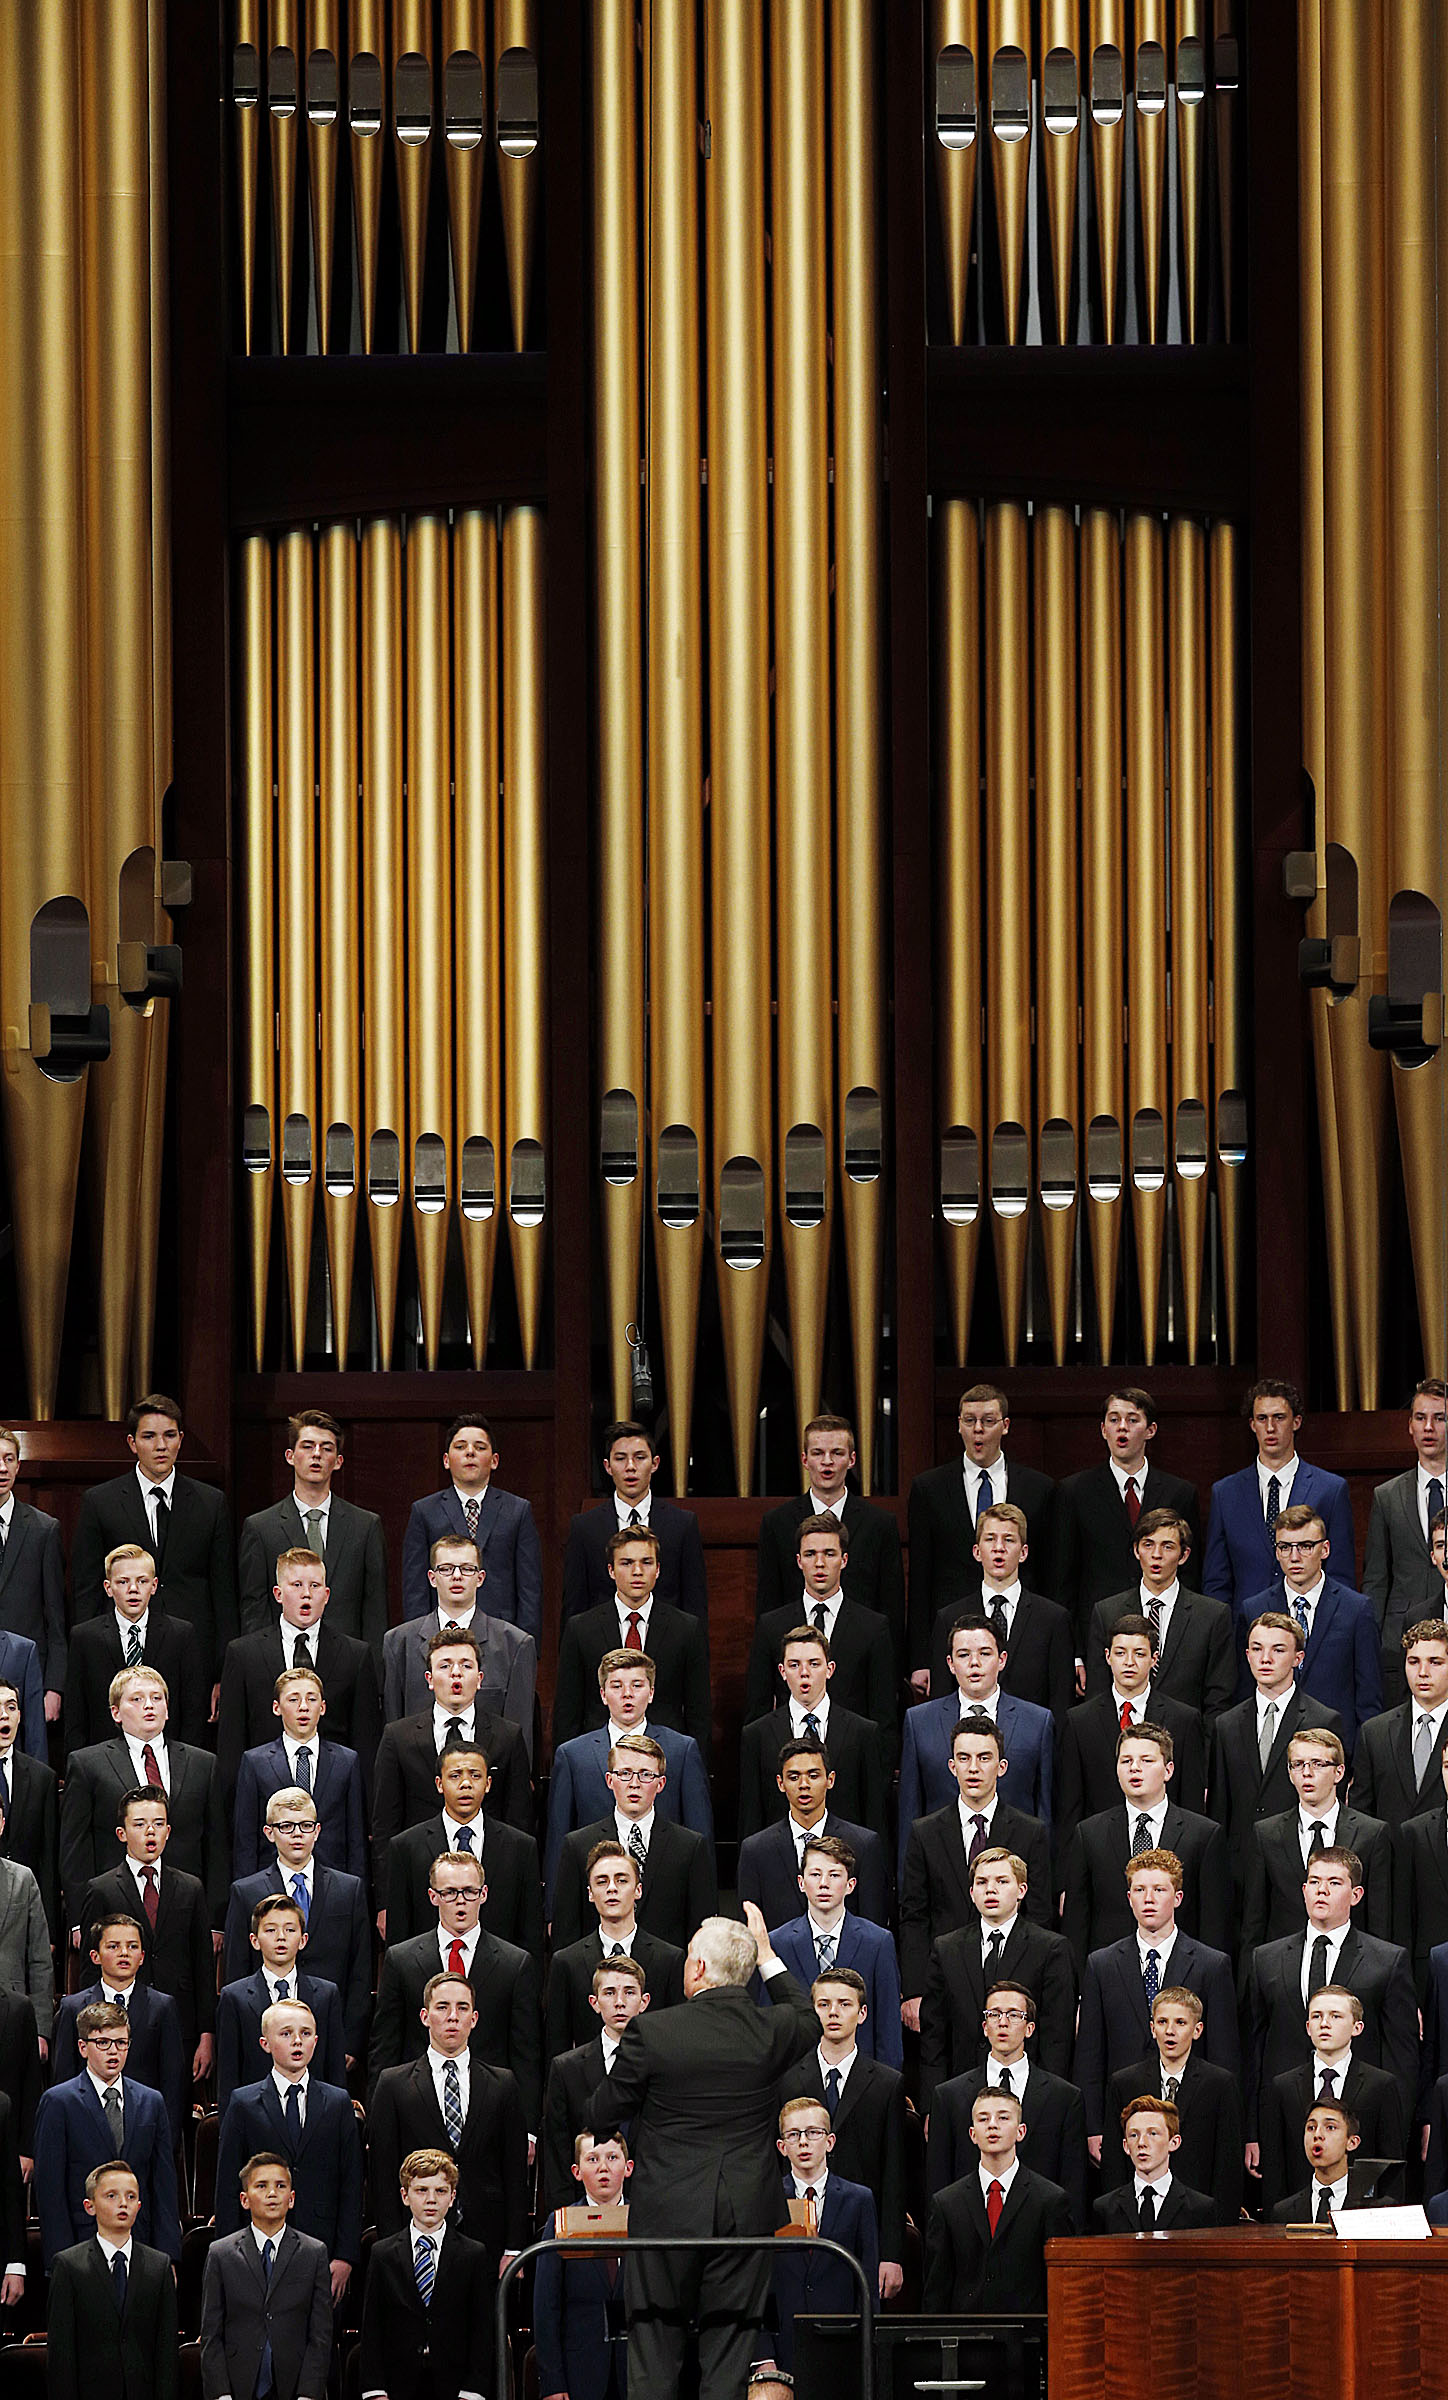 An Aaronic Priesthood choir from stakes in Layton, Utah, sings during the priesthood session of the 189th Annual General Conference of The Church of Jesus Christ of Latter-day Saints in the Conference Center in Salt Lake City on Saturday, April 6, 2019.